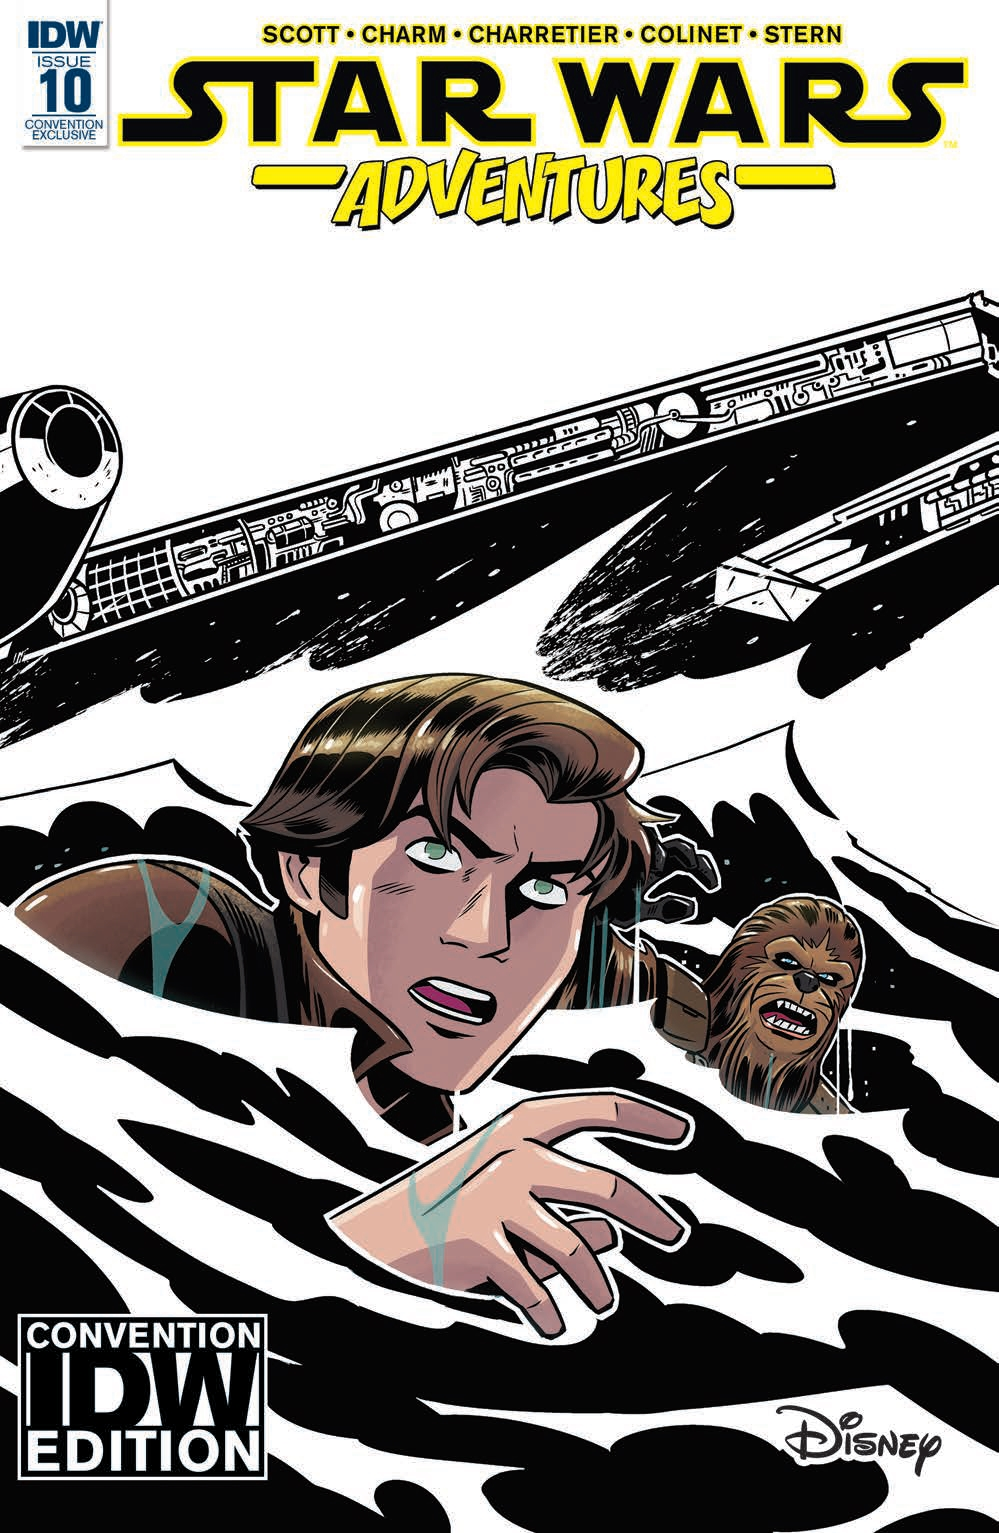 Star Wars Adventures #10 (Derek Charm Convention Black & White Variant Cover) (19.07.2018)